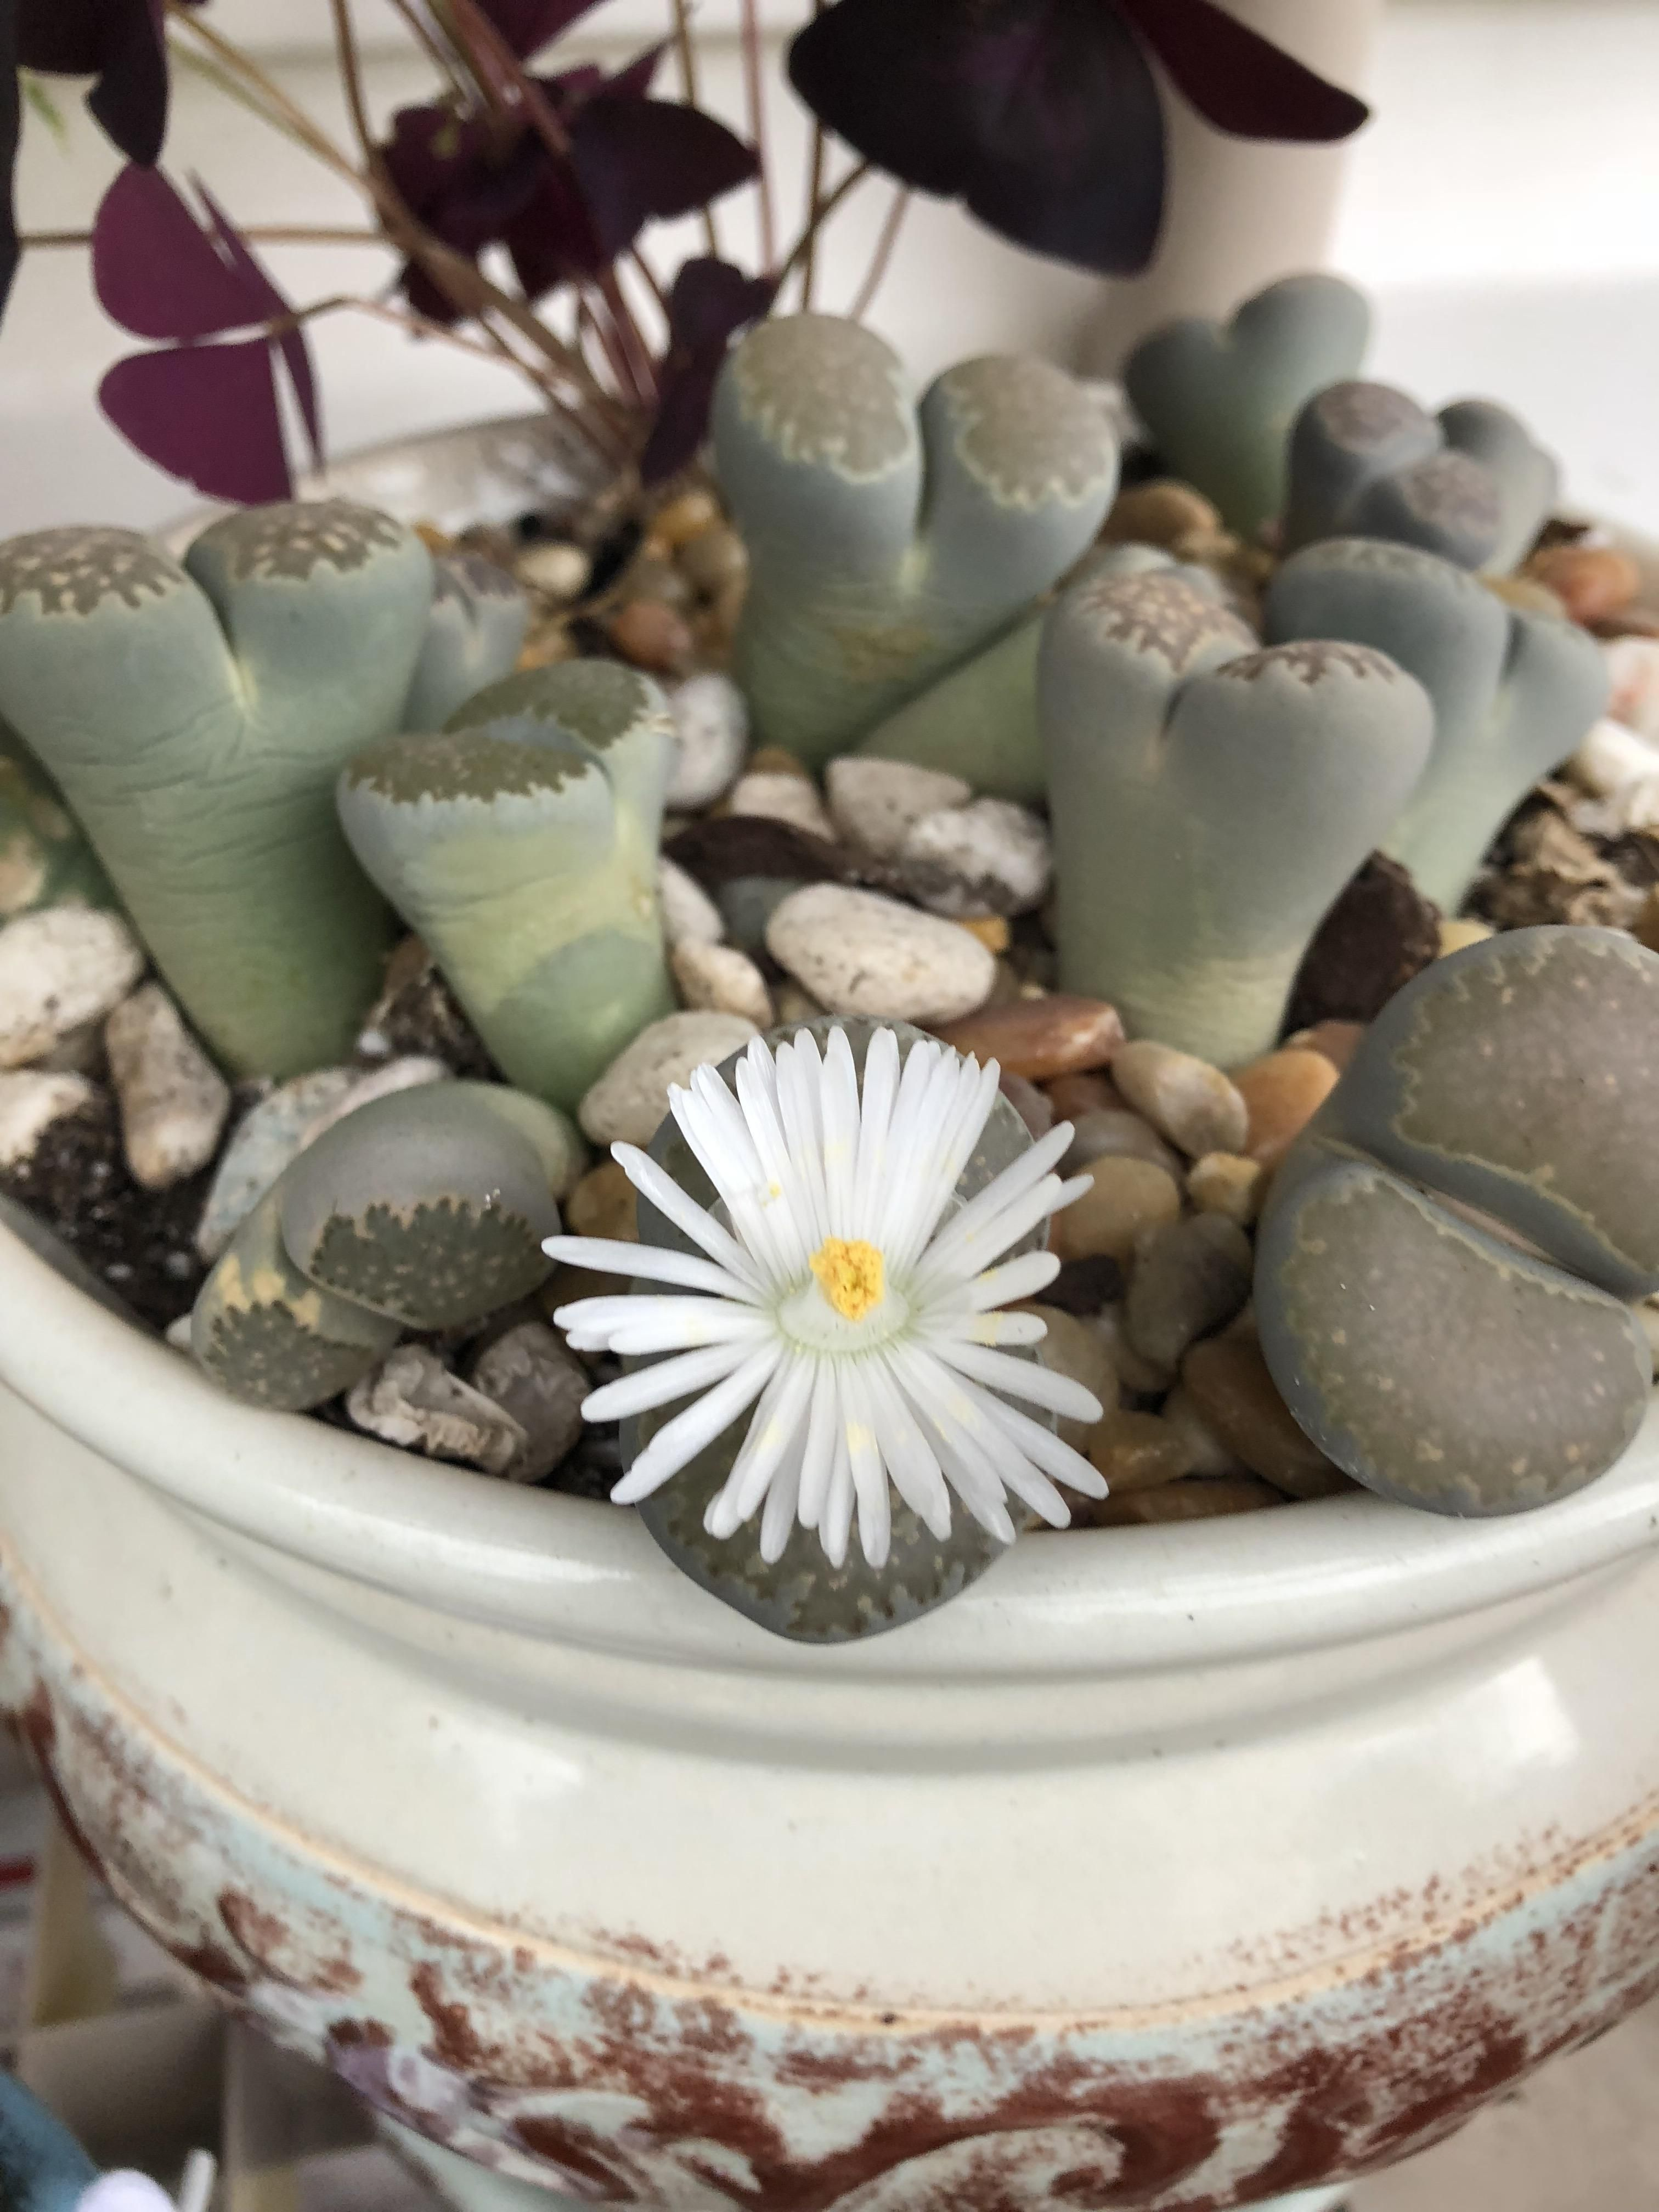 Living stones - flowers that can surprise